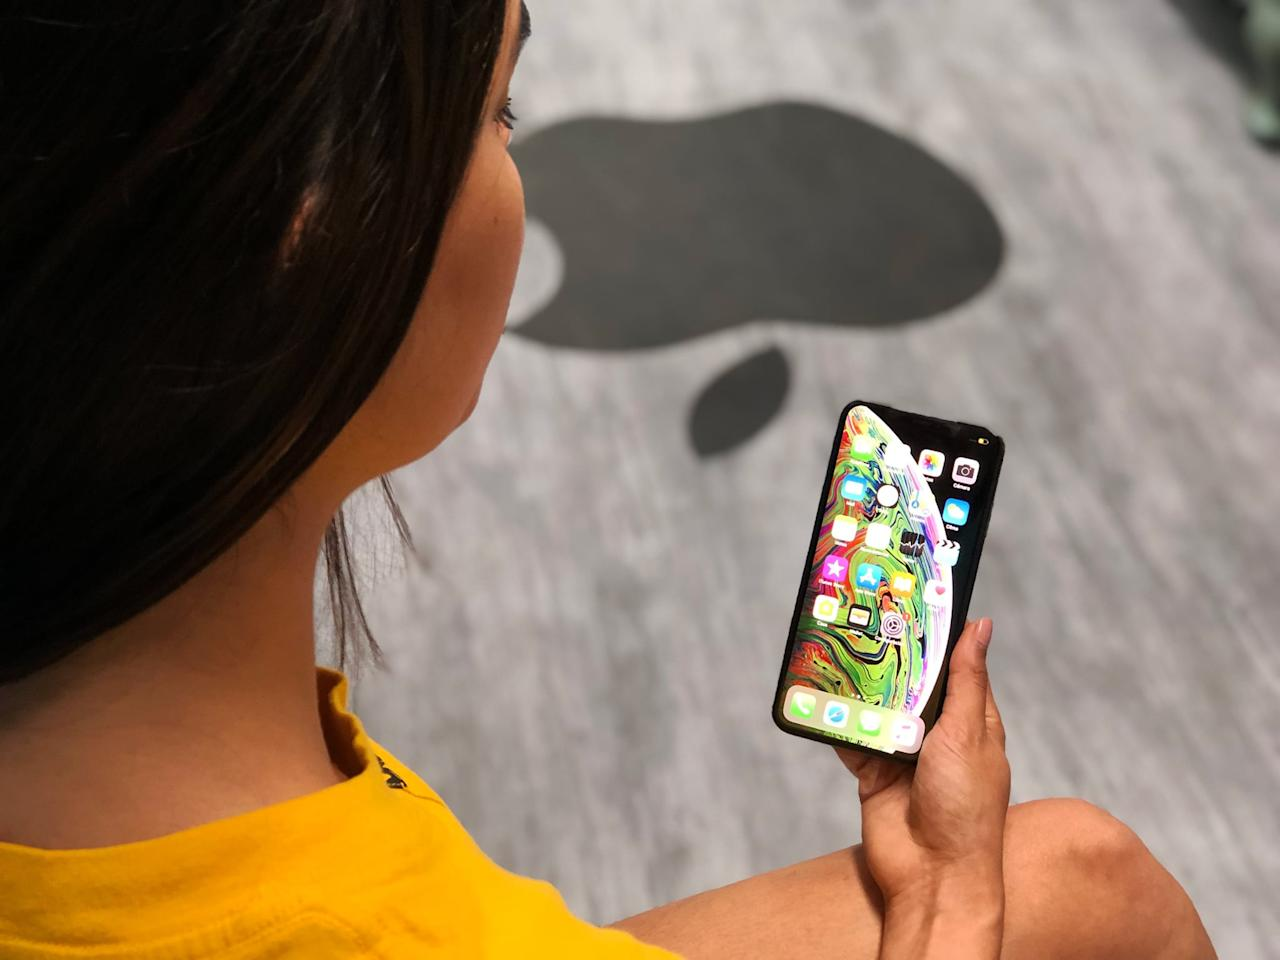 """<p>Though Android had a facial recognition feature first, Apple's Face ID is much more advanced and secure. In fact, the Android version is more of a bonus than a key component, much less commonly used as the primary way of logging in and out compared to the iPhone. That being said, it's suspected that <a href=""""https://www.engadget.com/2019/01/27/android-q-hardware-face-recognition/"""" target=""""_blank"""" class=""""ga-track"""" data-ga-category=""""Related"""" data-ga-label=""""https://www.engadget.com/2019/01/27/android-q-hardware-face-recognition/"""" data-ga-action=""""In-Line Links"""">a more direct Face ID competitor could be included in Android Q</a>, Google's forthcoming mobile OS system.</p>"""